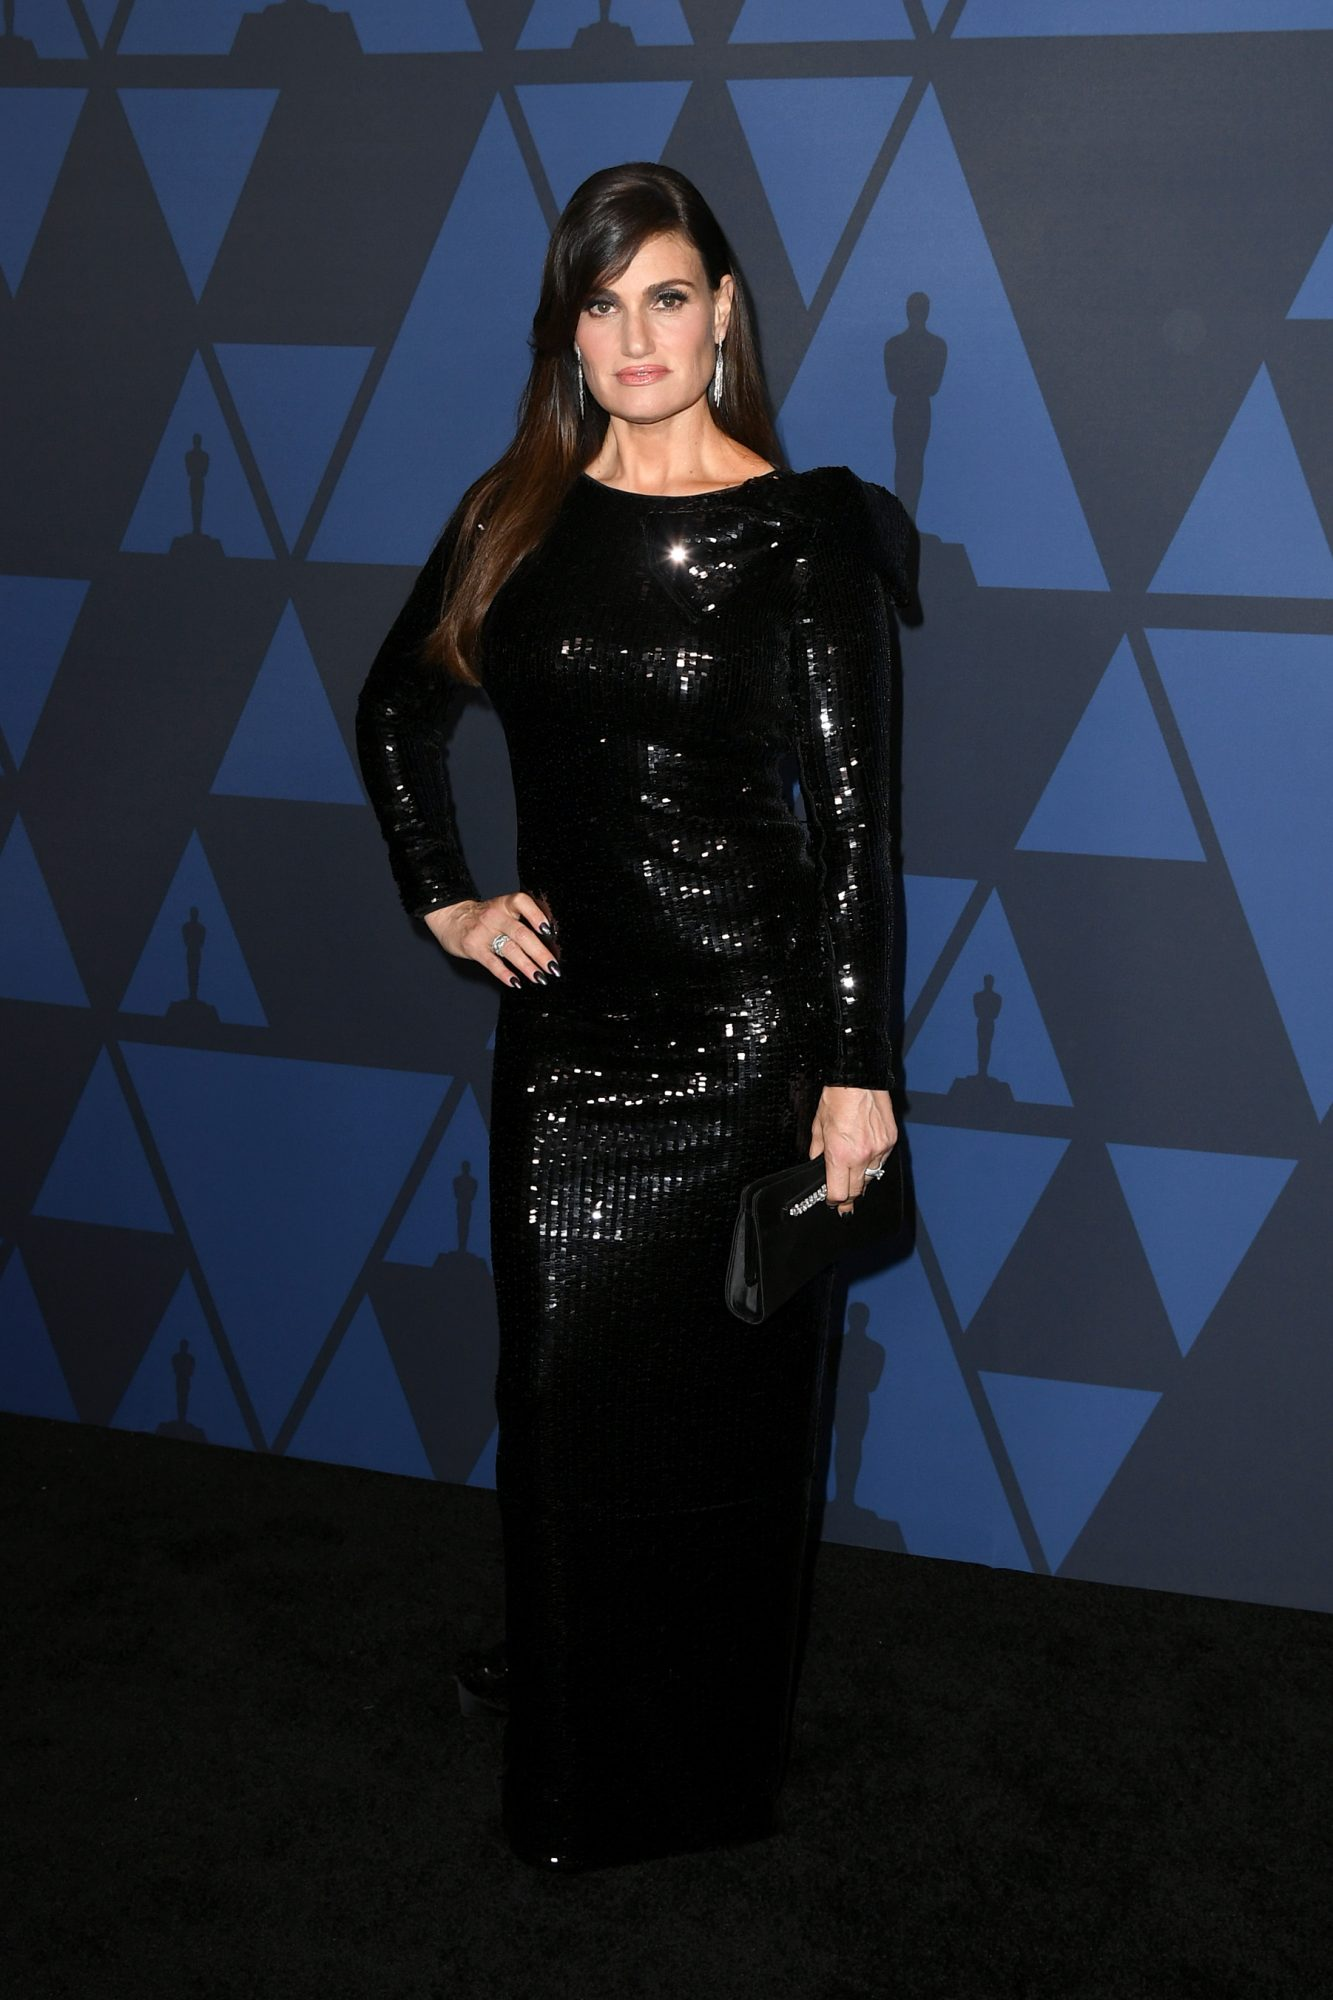 HOLLYWOOD, CALIFORNIA - OCTOBER 27: Idina Menzel attends the Academy Of Motion Picture Arts And Sciences' 11th Annual Governors Awards at The Ray Dolby Ballroom at Hollywood & Highland Center on October 27, 2019 in Hollywood, California. (Photo by Kevin Winter/Getty Images)